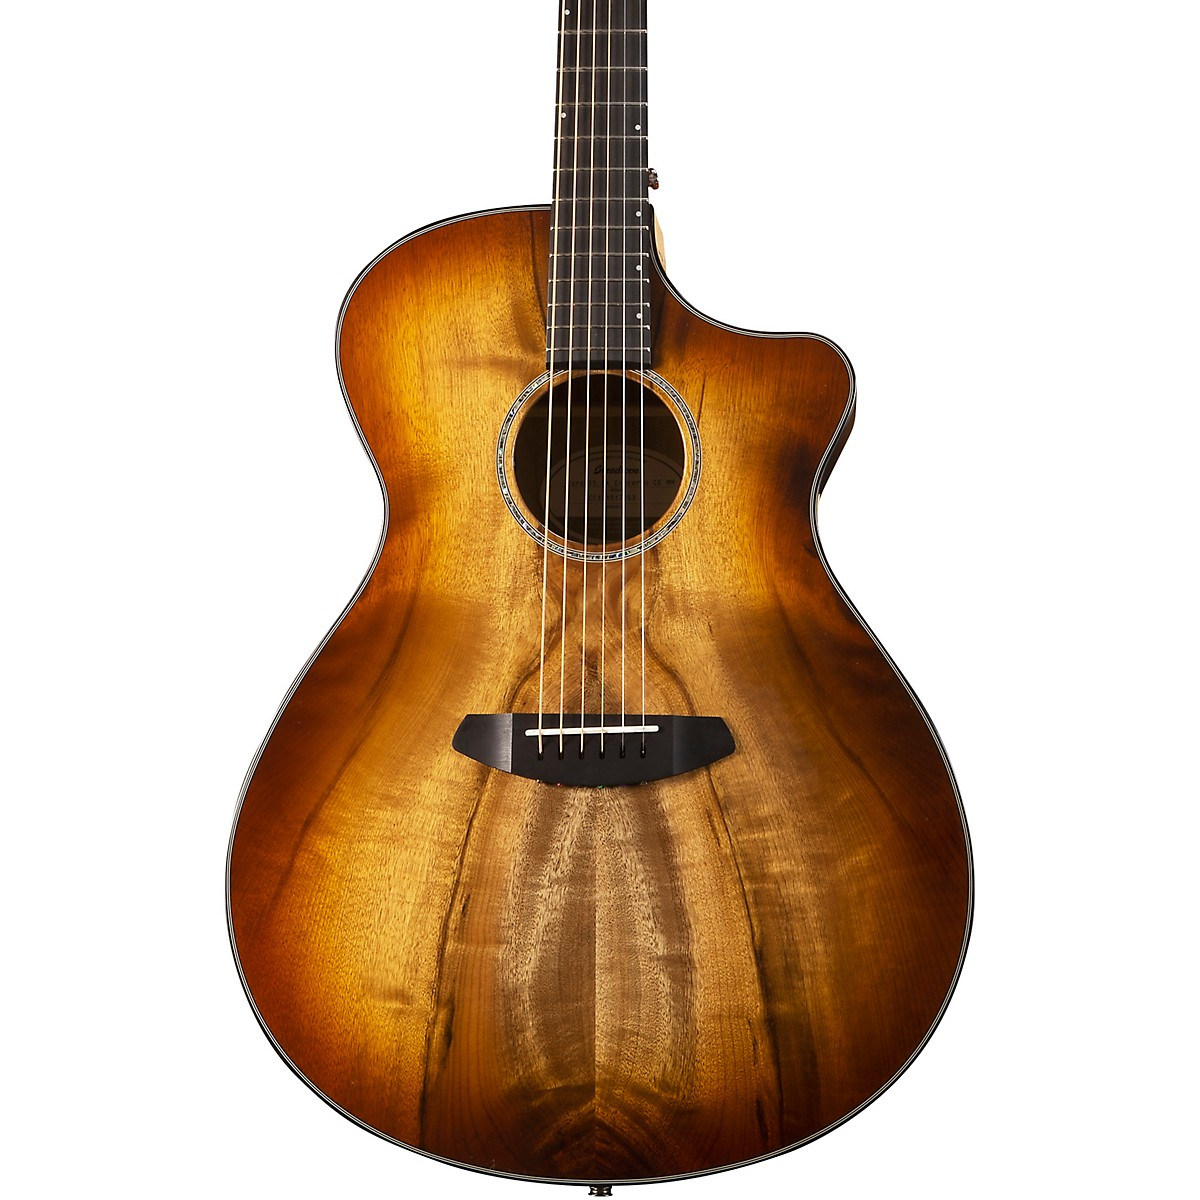 Breedlove Pursuit Exotic Concerto CE Myrtlewood-Myrtlewood Acoustic-Electric Guitar